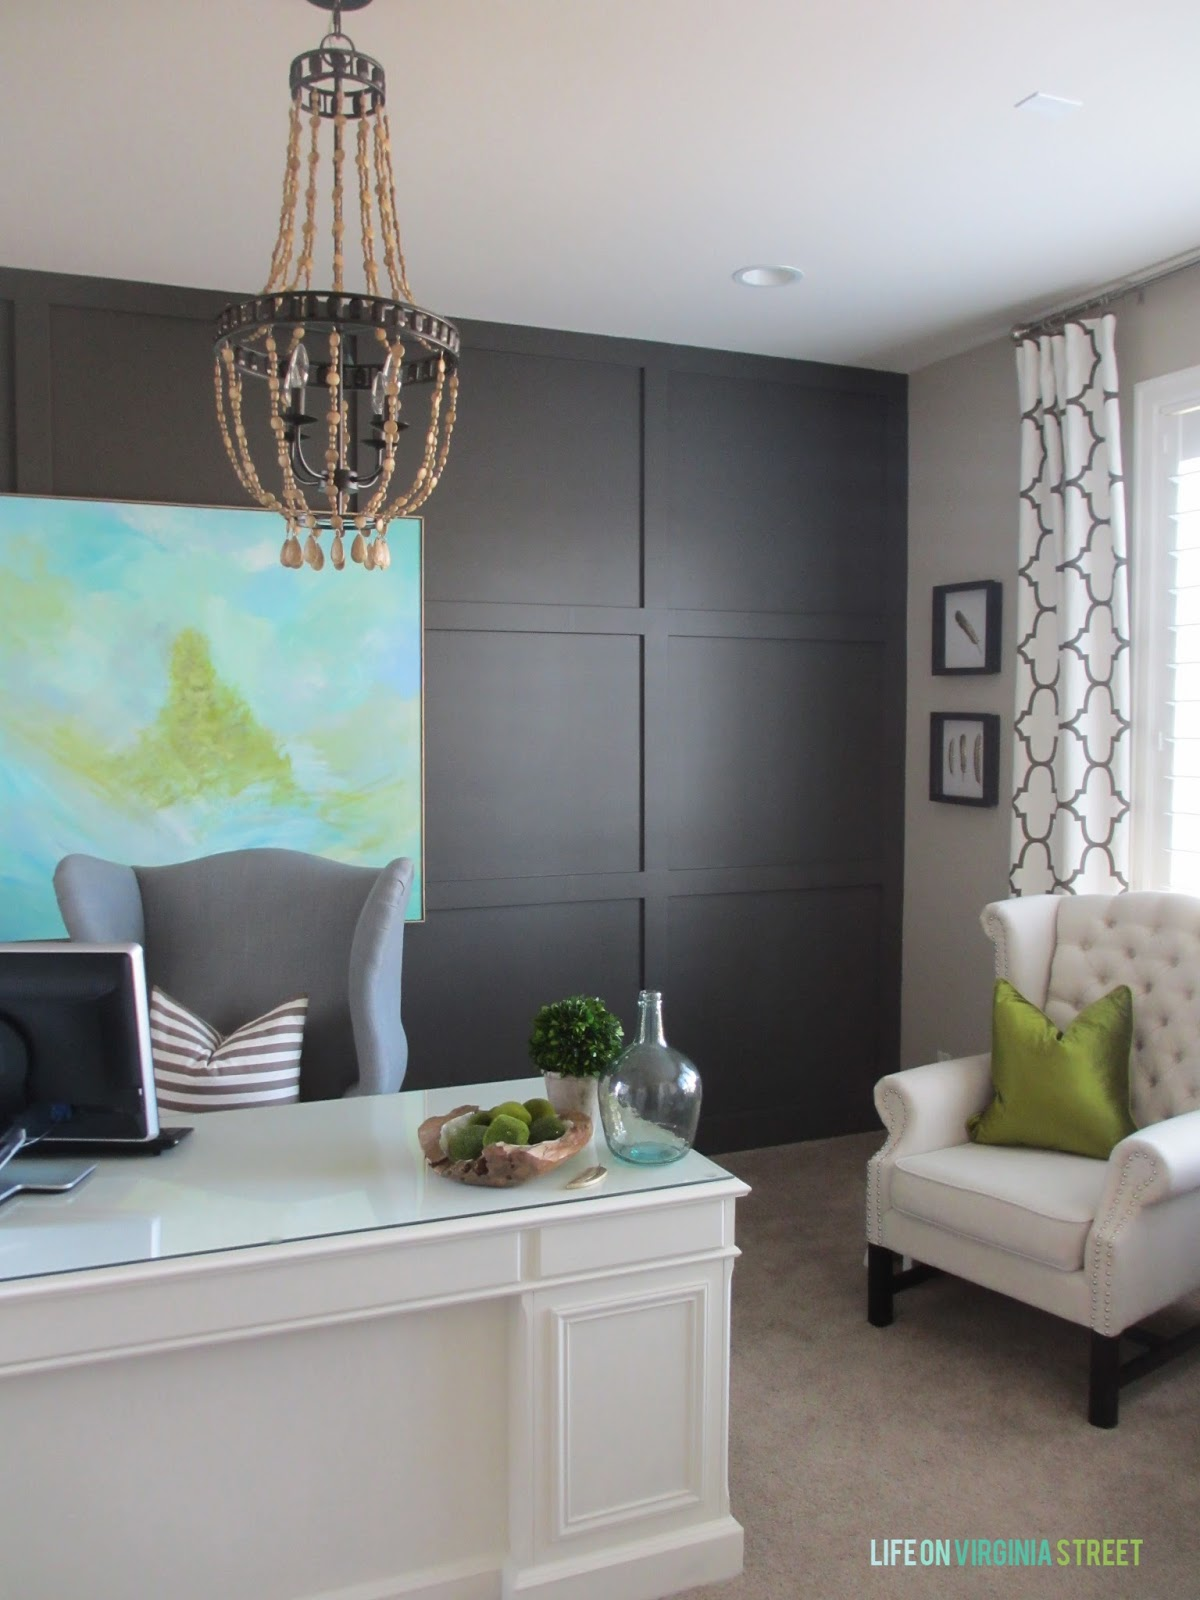 Home office makeover with Sherwin Williams Urbane Bronze board and batten wall, wood bead chandelier, and DIY abstract artwork.